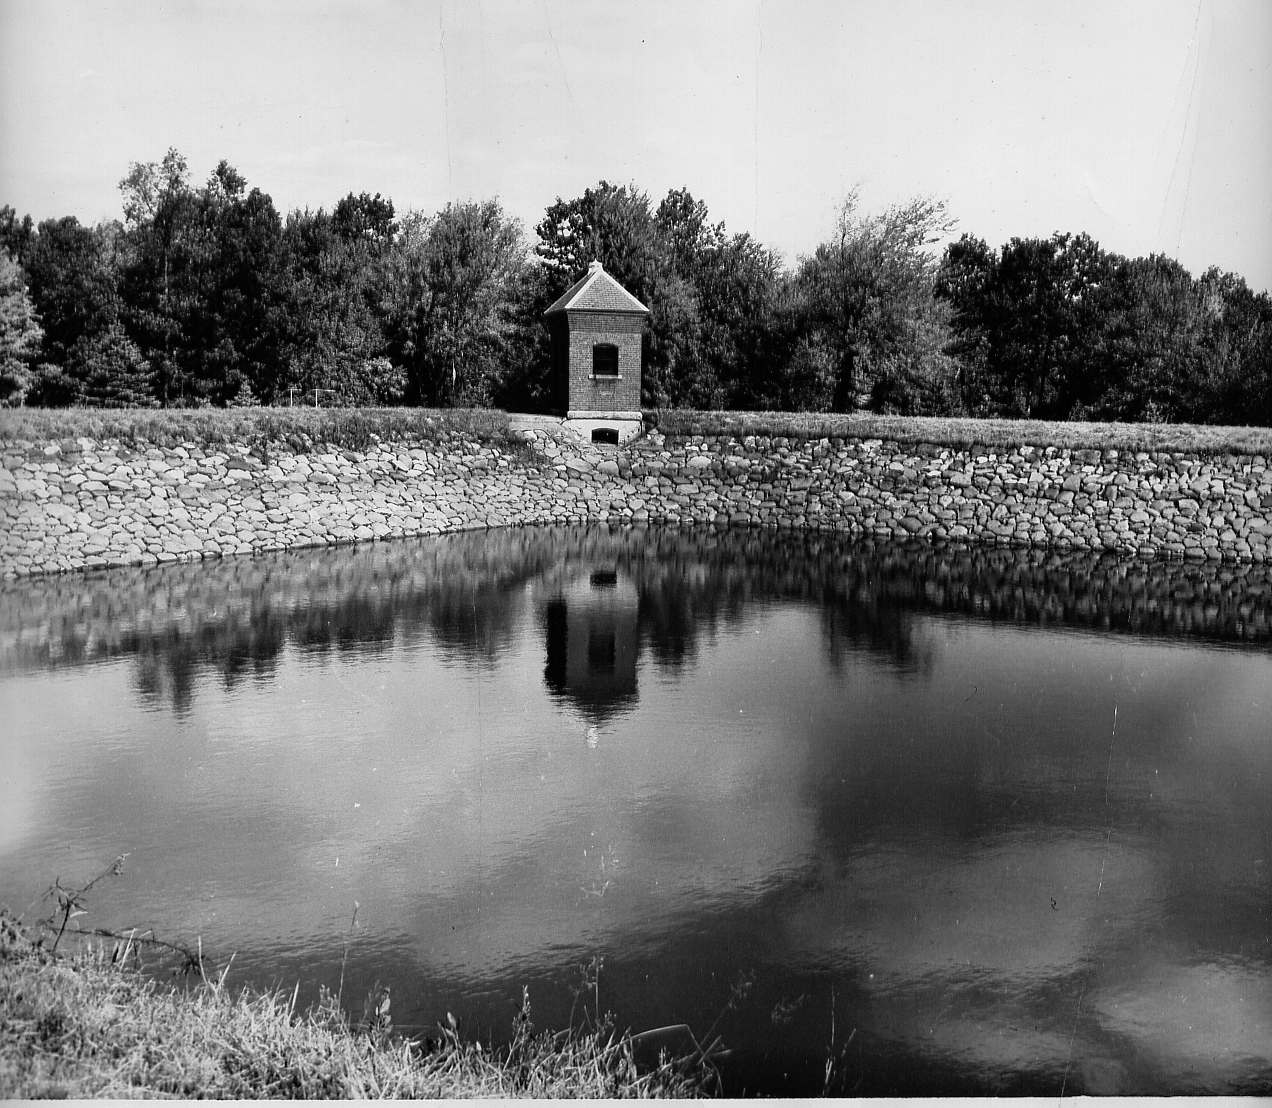 Sackett gatehouse overlooking the water in the receiving reservoir